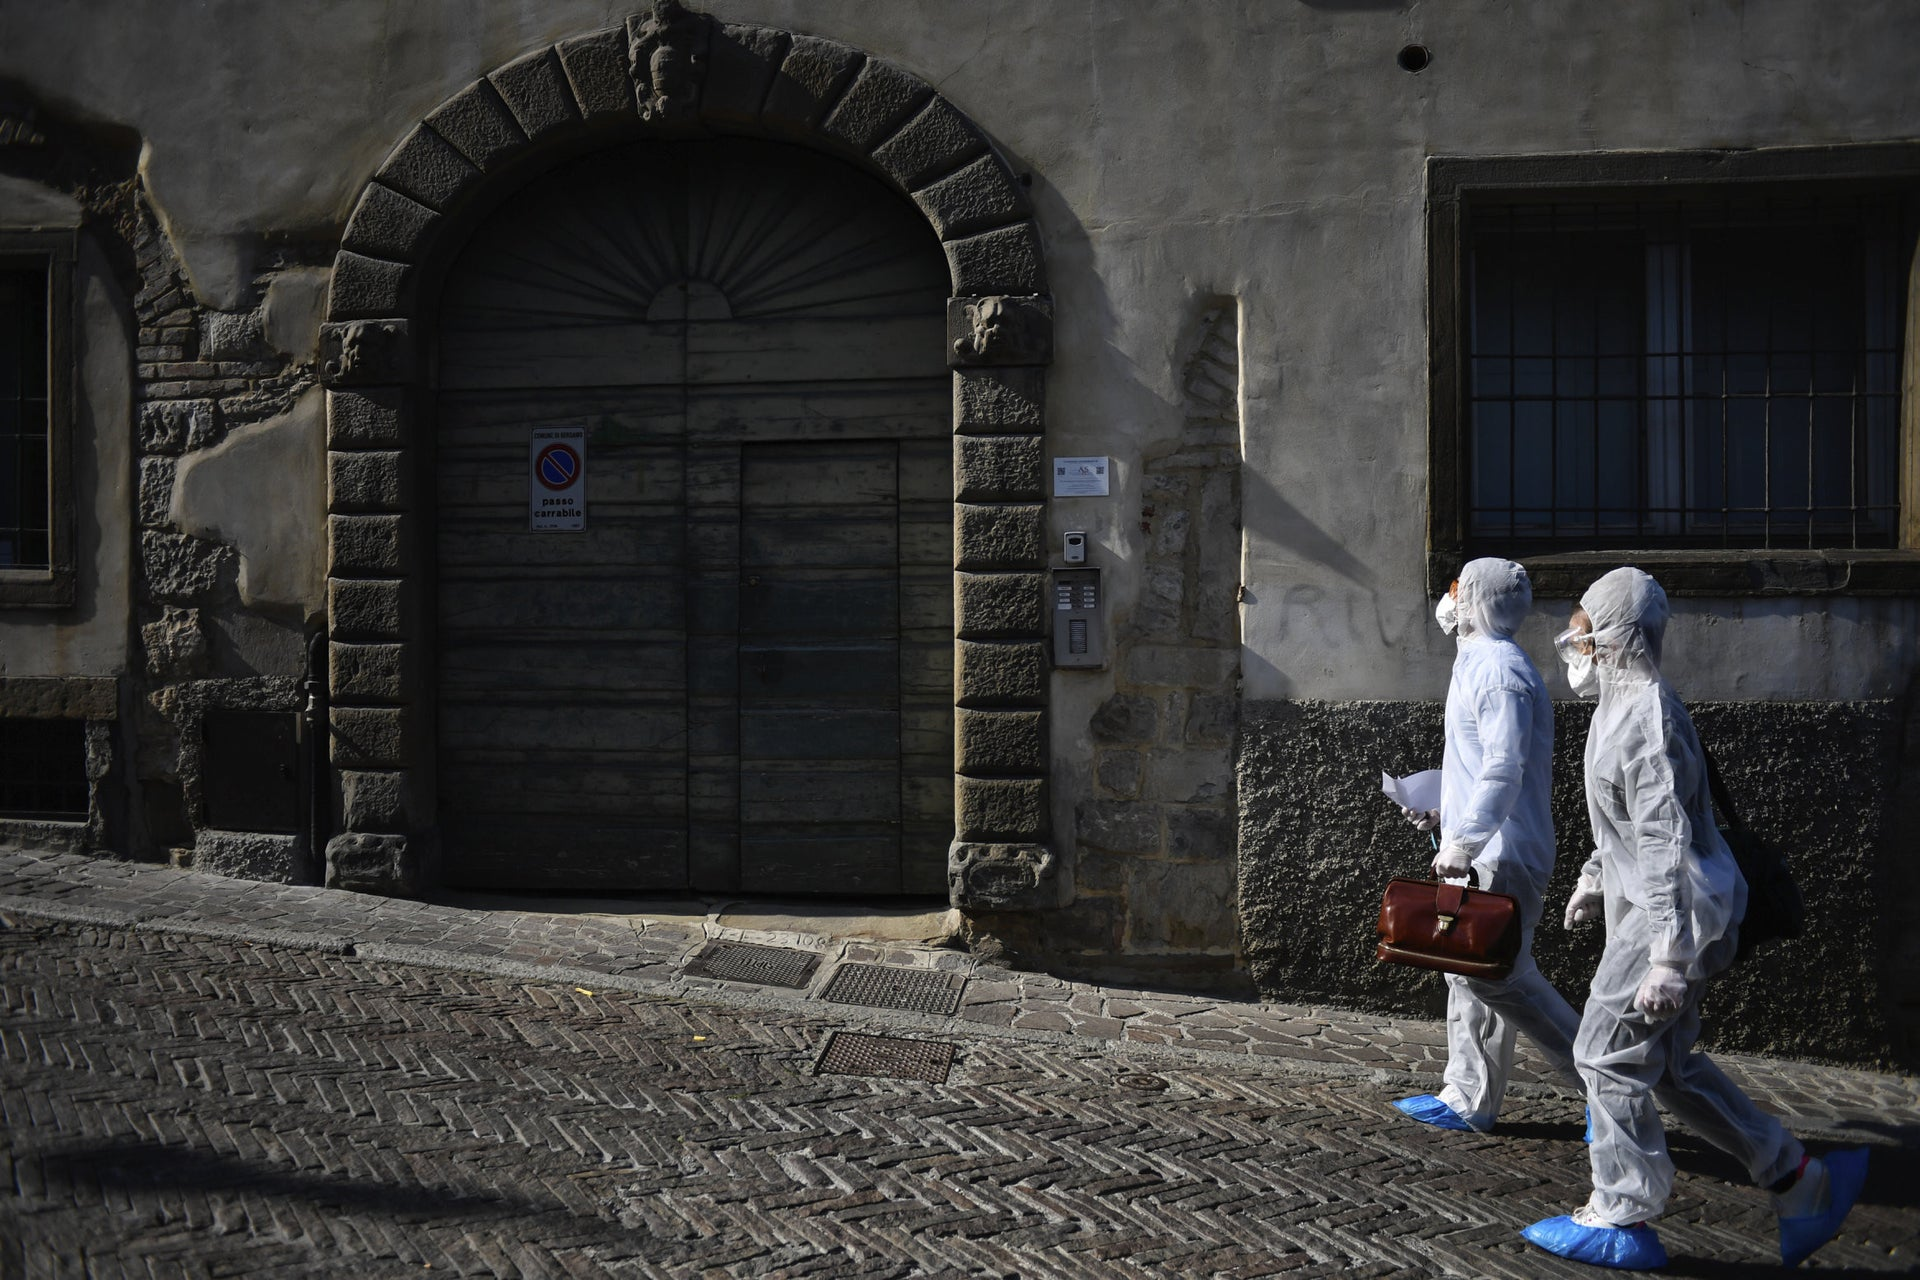 Medical staffers wearing protective gear, part of a special unit performing house calls, walk in Bergamo, northern Italy, one of the areas worse-affected by coronavirus, March 25, 2020.